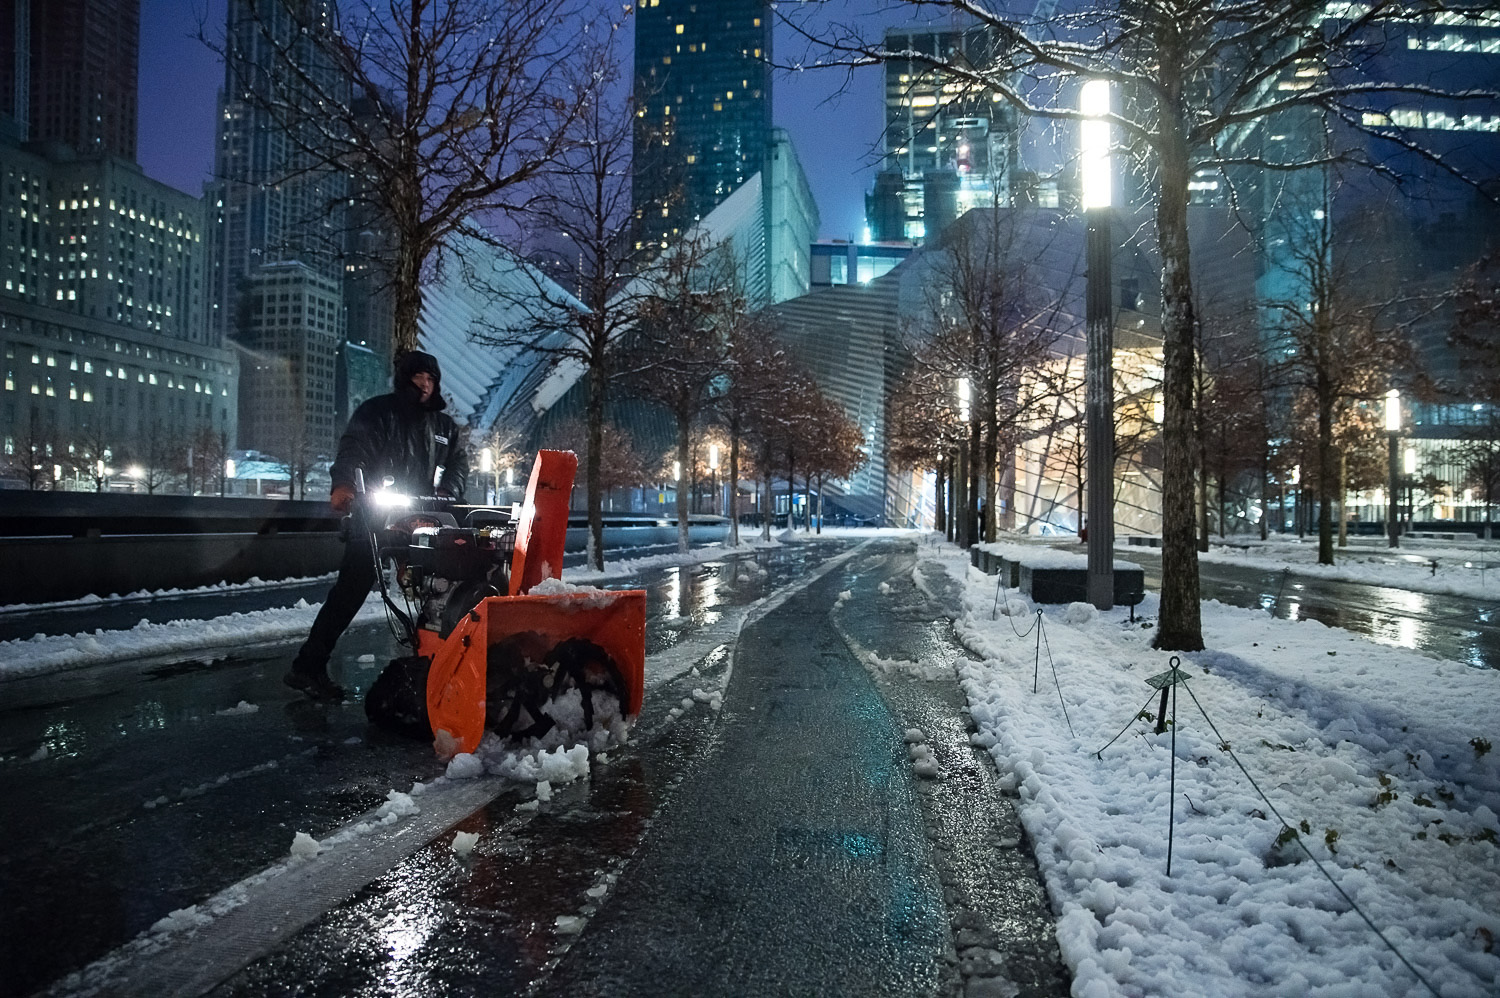 Ariens to Attend Snow and Ice Management Show in Montreal June 21-22